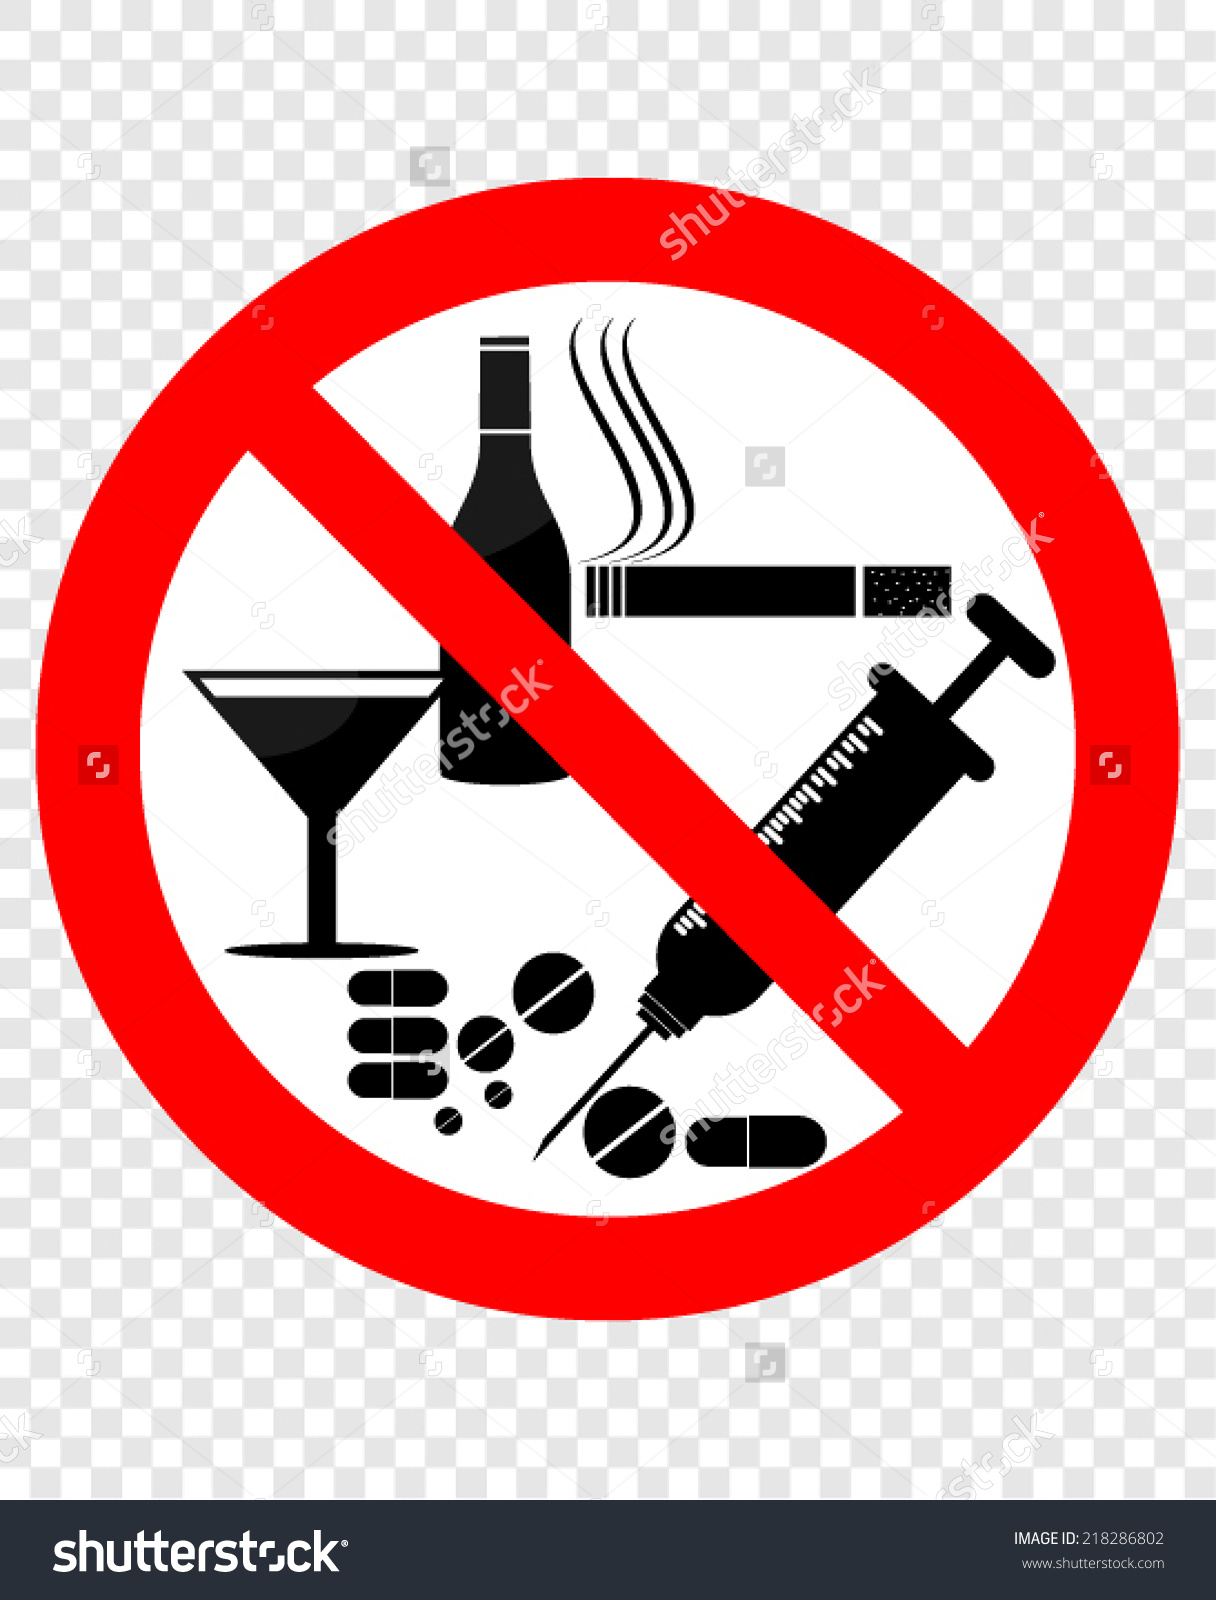 No drugs and alcohol clipart.